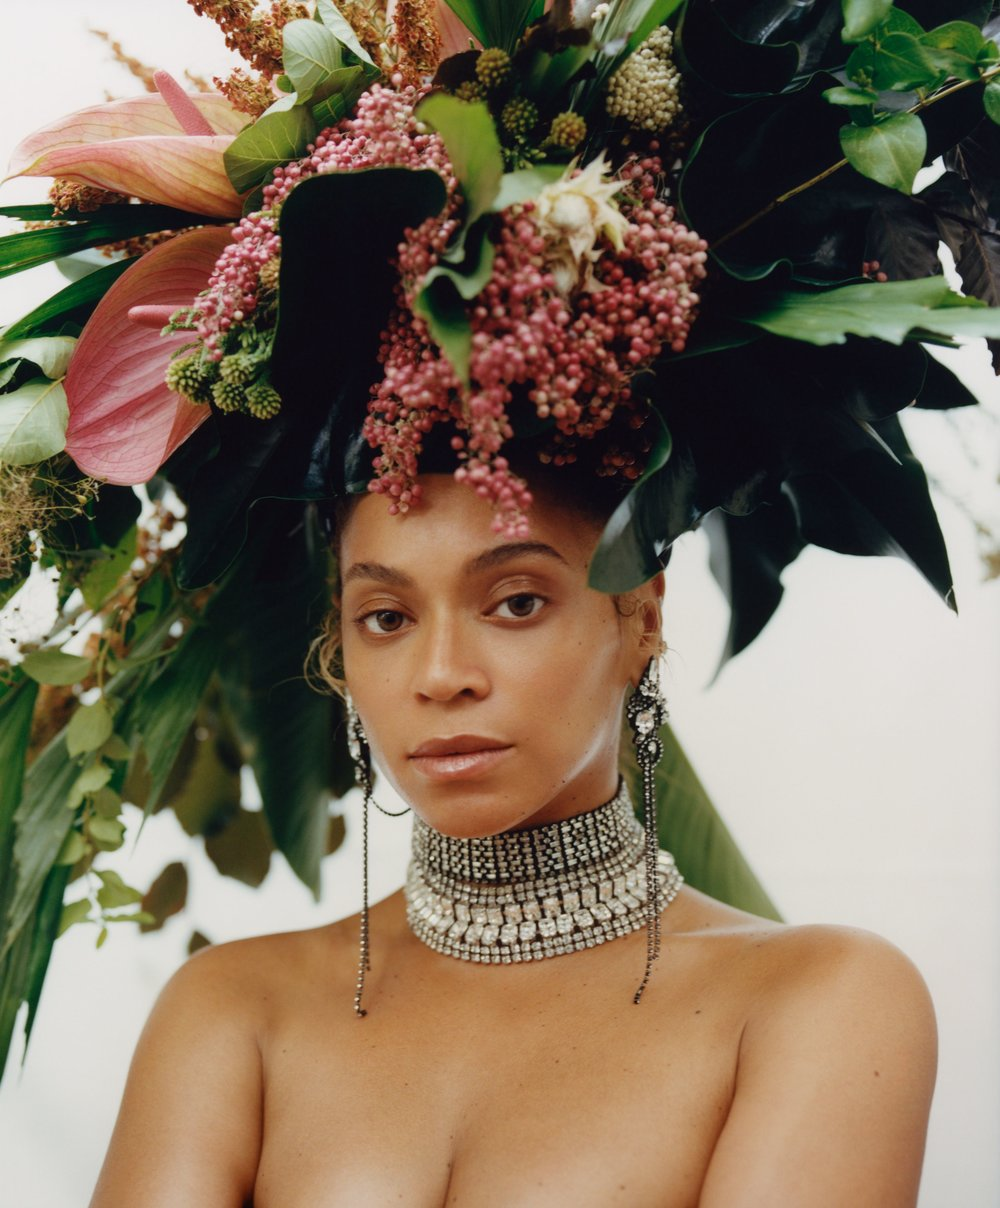 01-beyonce-vogue-september-cover-2018.jpg